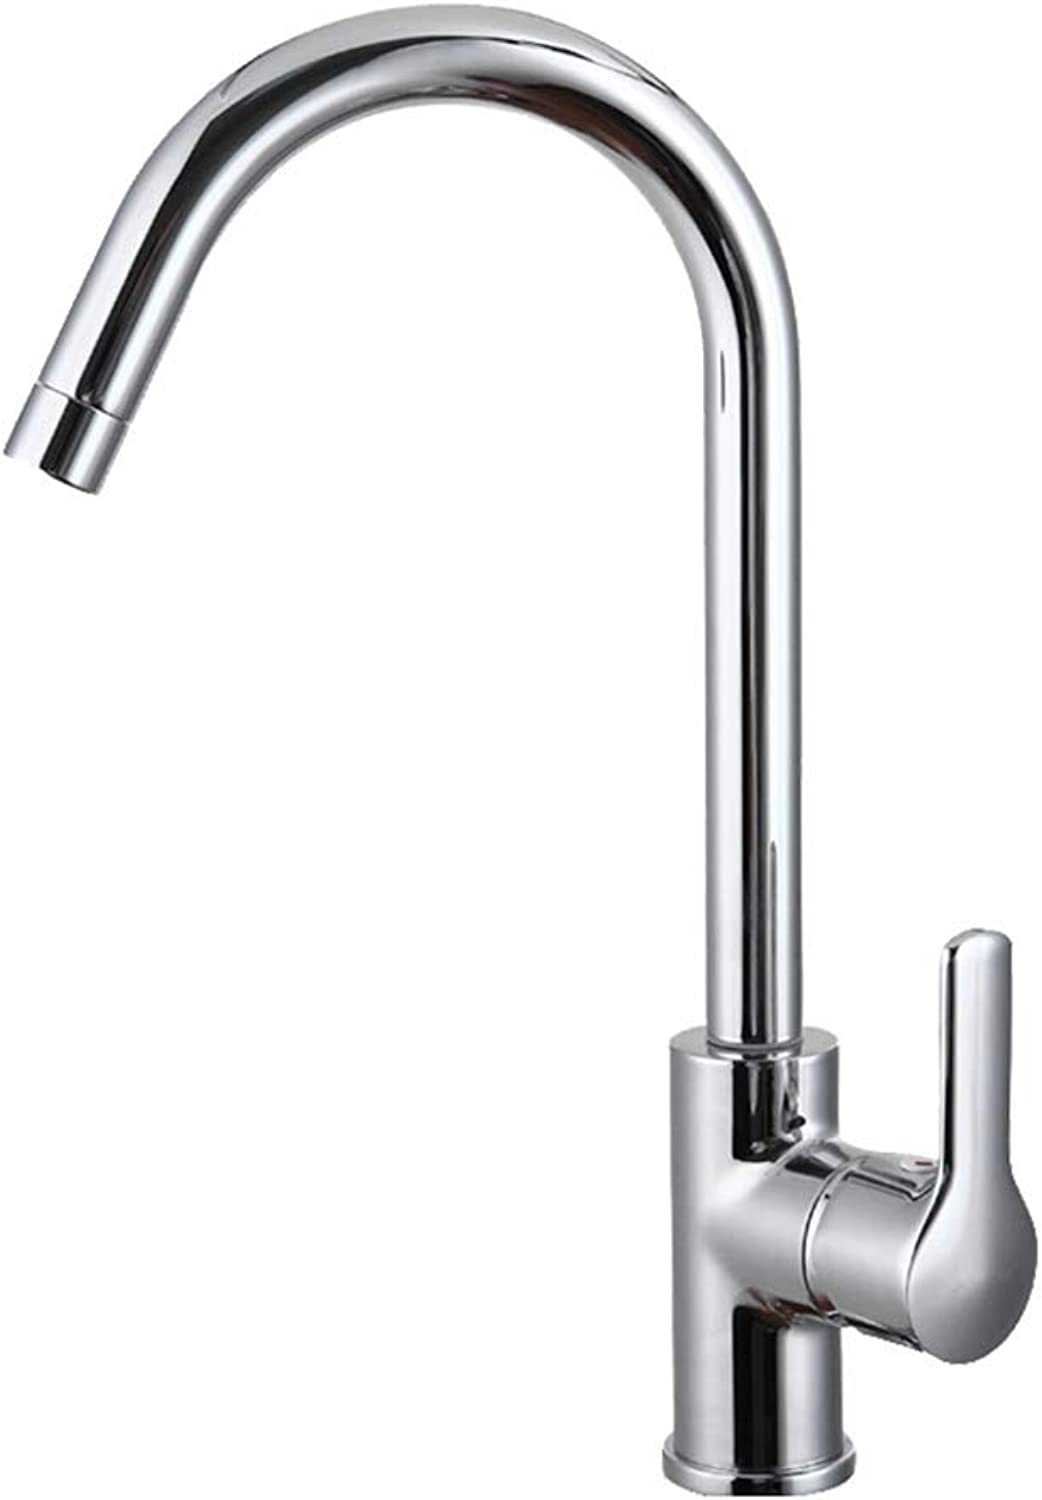 WB_L Kitchen Sink Taps Faucet Faucet Kitchen Sink Tap, Basin Mixer Faucet redatable Swivel Spout Brass Chrome Finish Modern Tap For Hot And Cold Water